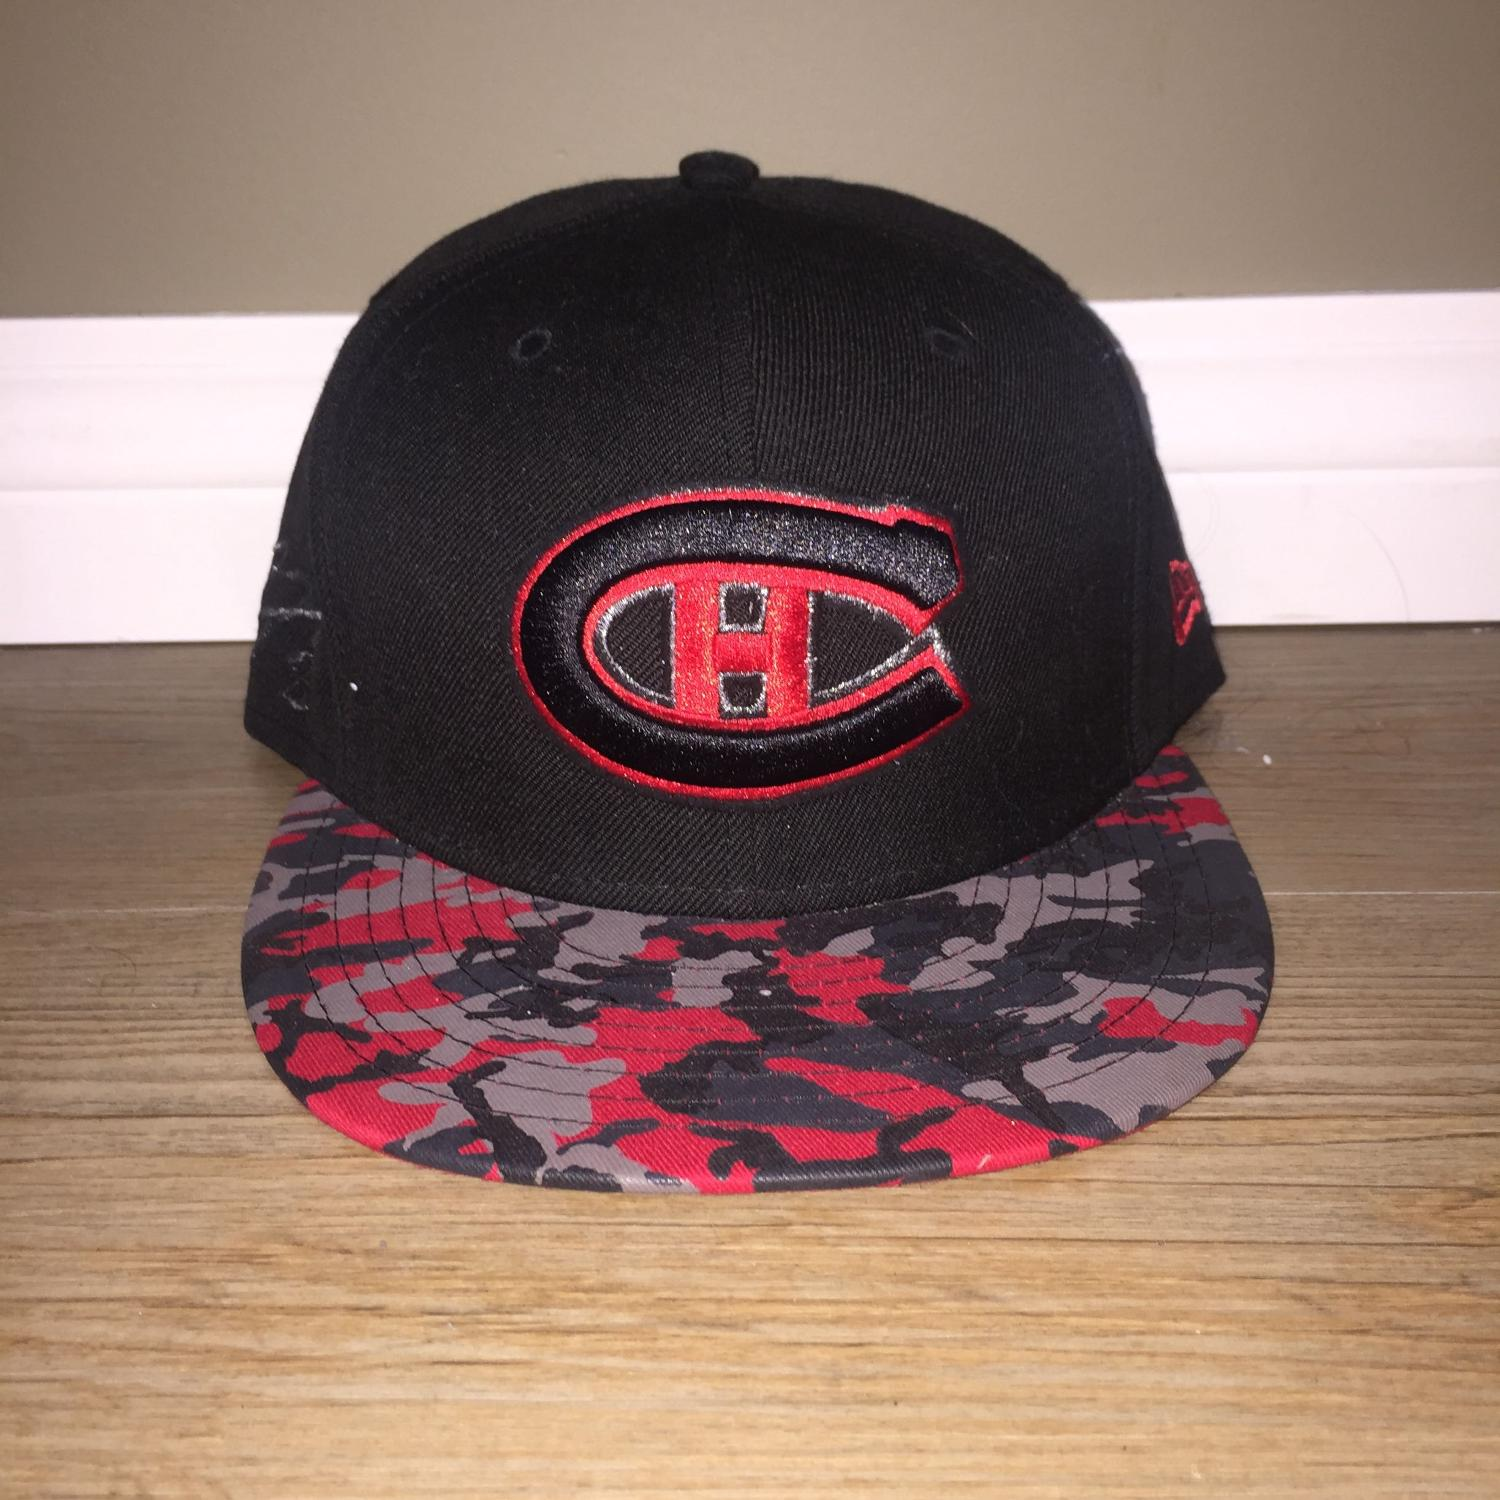 Best Montreal Canadiens Hat For Sale In Edmonton Alberta For 2020